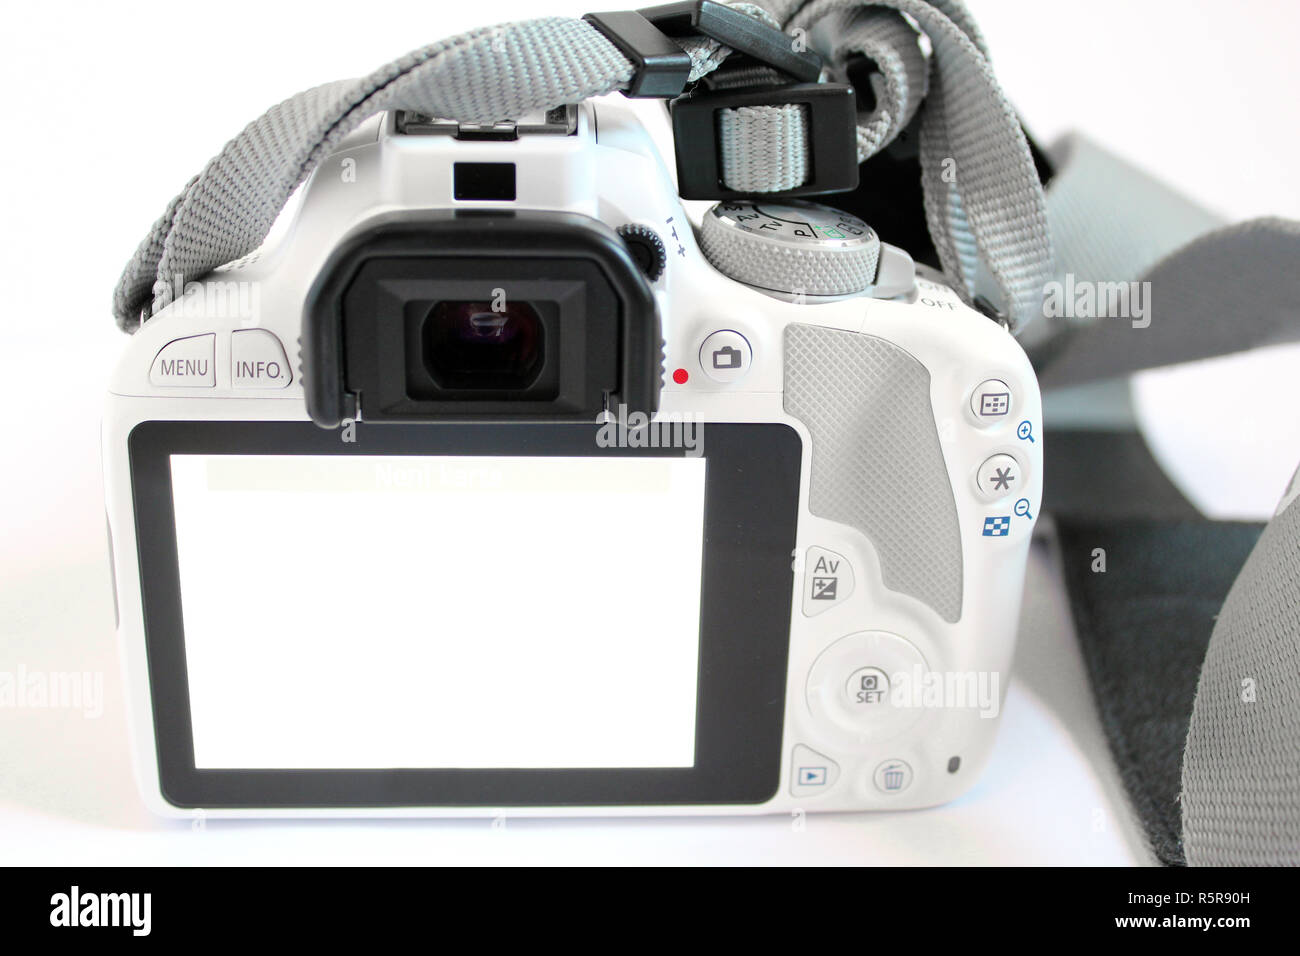 Camera digital slr single lens reflex white Stock Photo